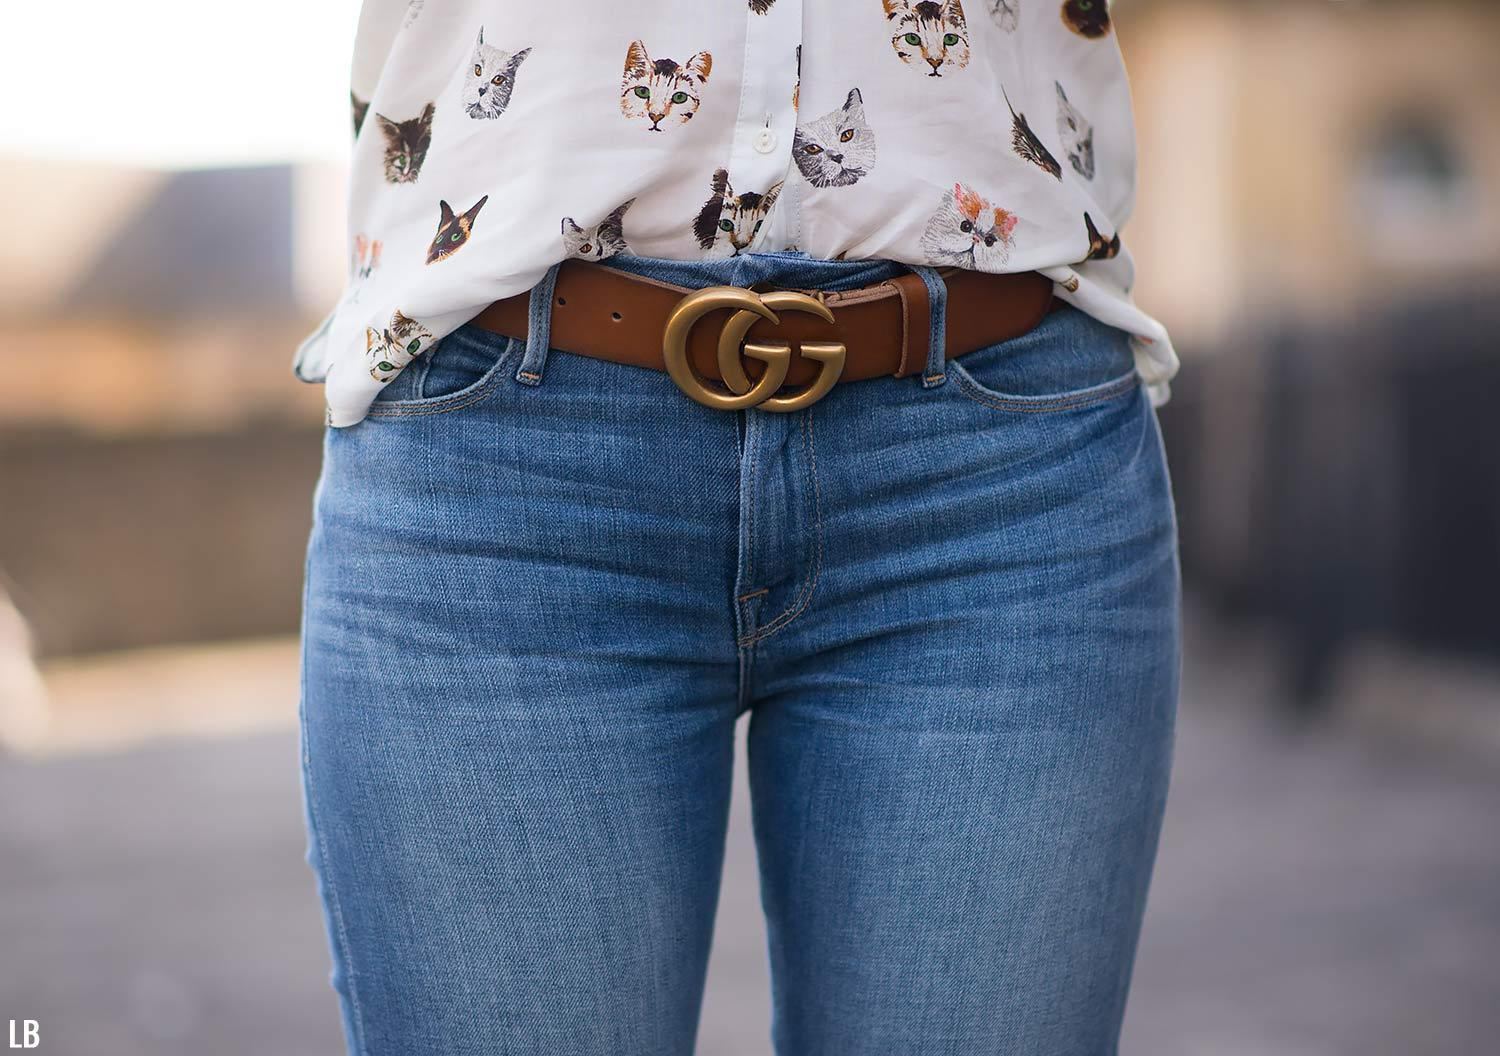 b280d09a477 Overall Opinion – I literally have nothing bad at all to say about this belt.  I am completely in love with the design of it